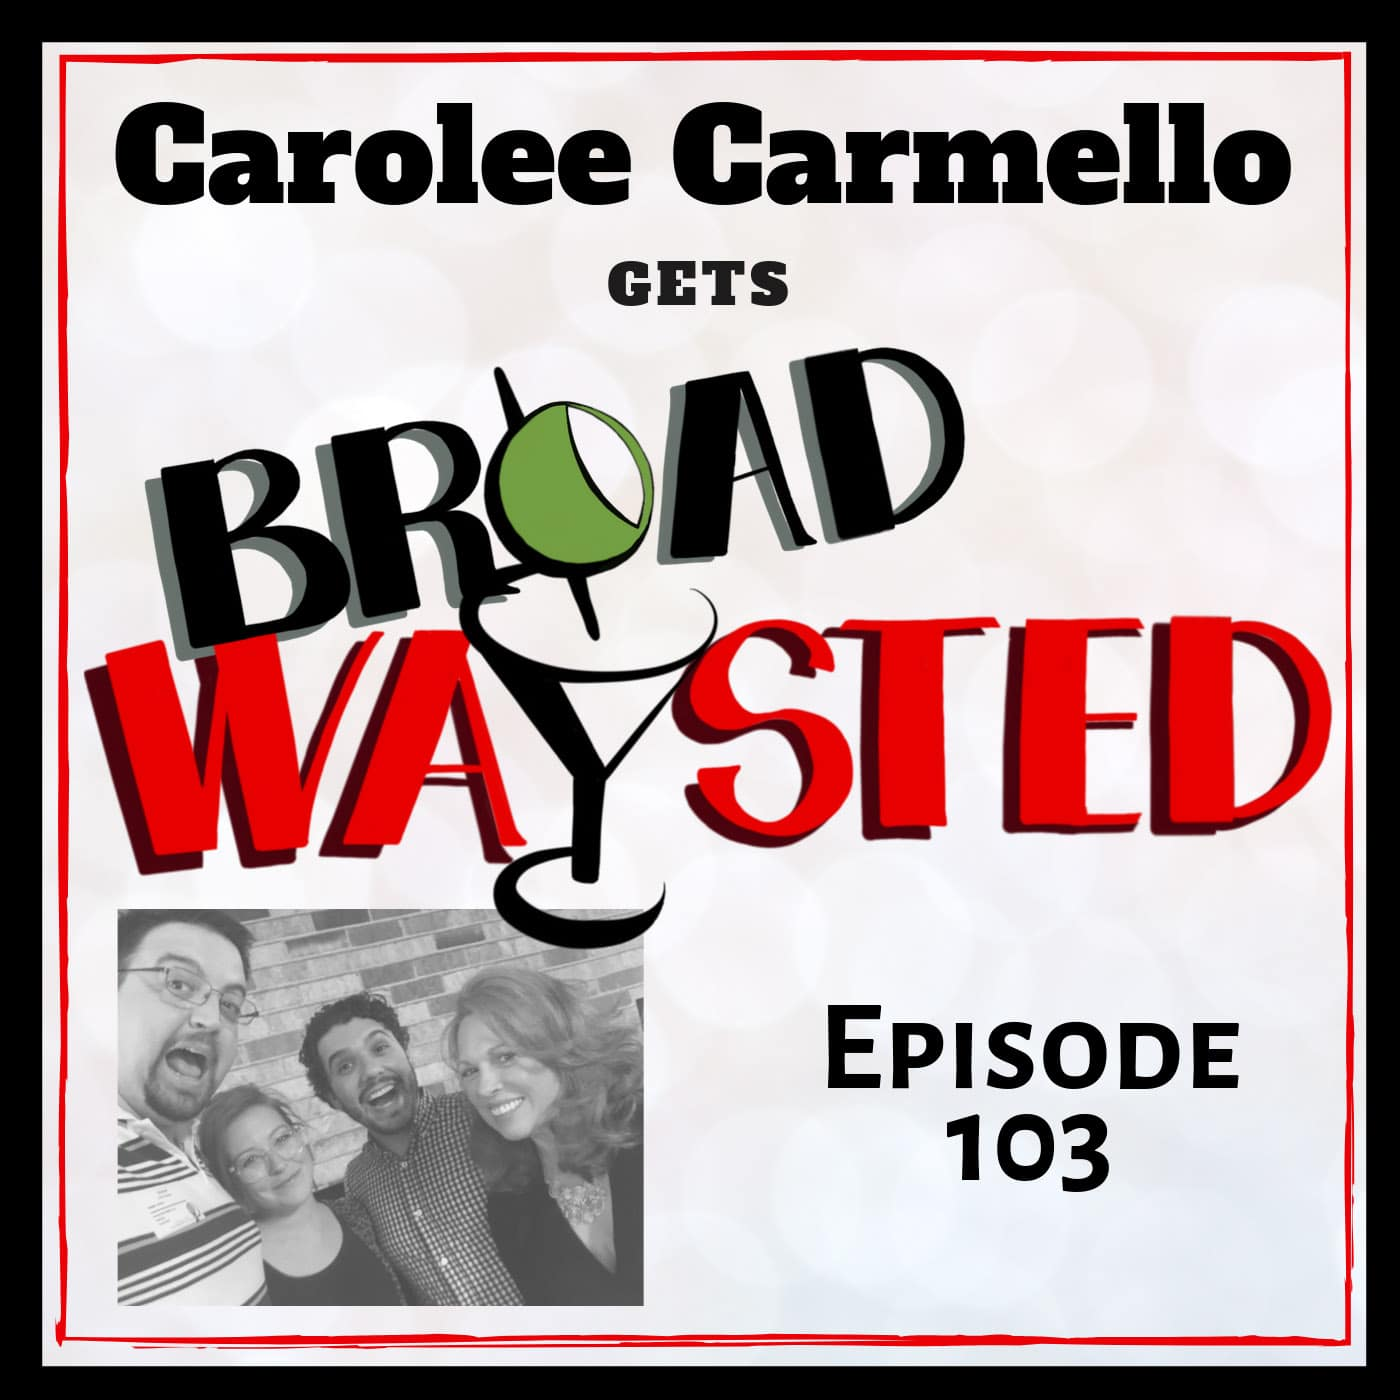 Broadwaysted Ep 103 Carolee Carmello